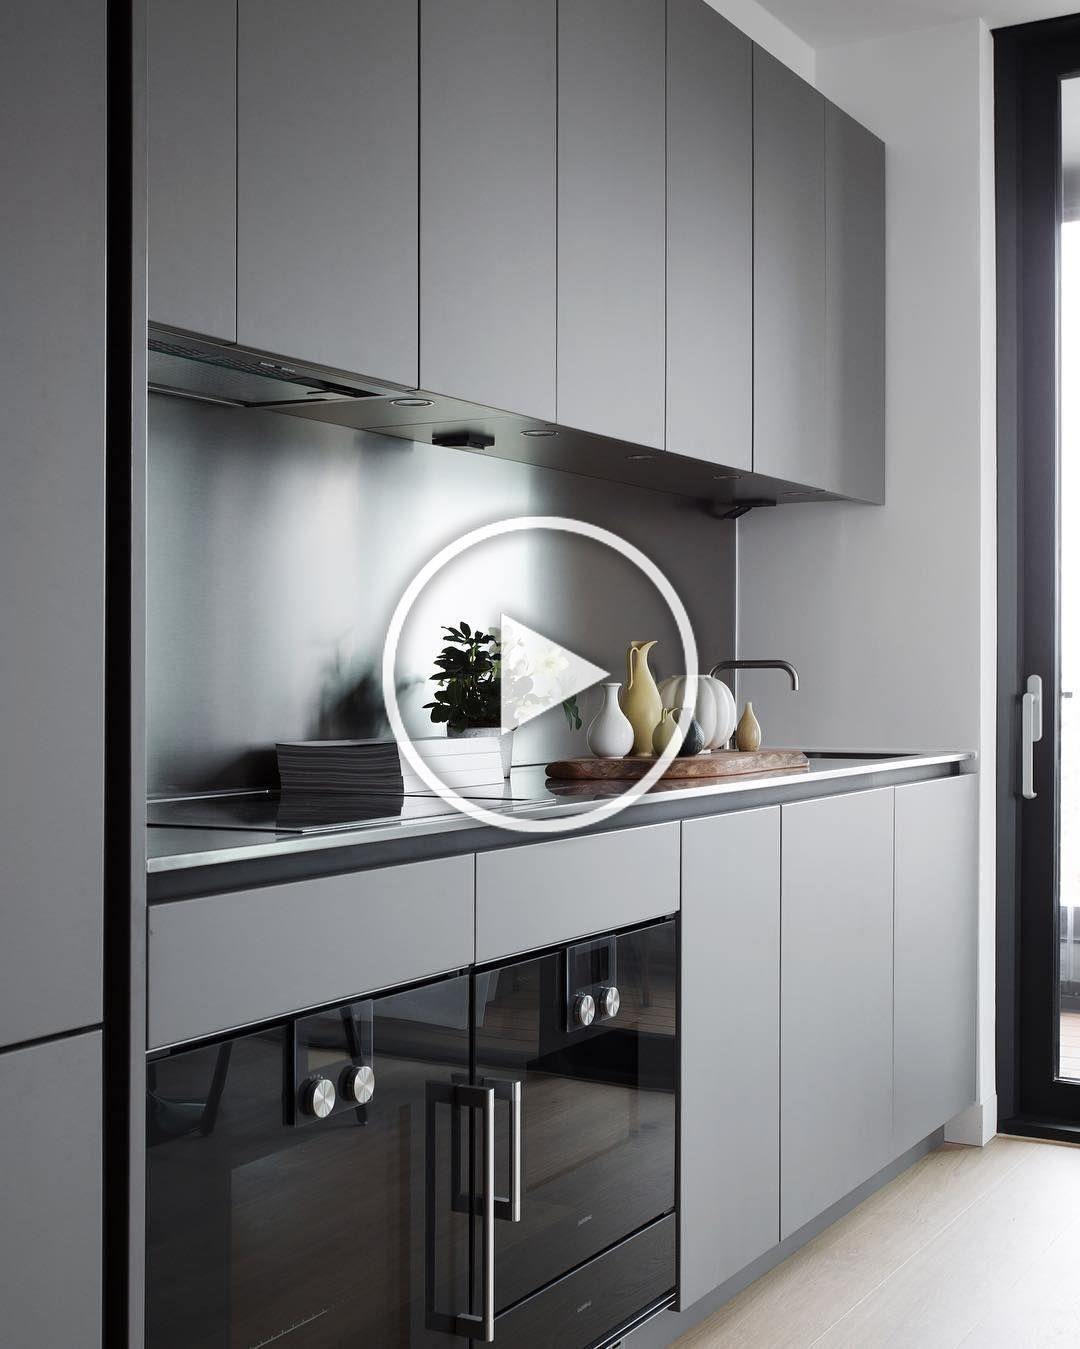 Modular Kitchen Is The Latest Kitchen Set Model That Is Mostly Used Currently The Modular Kitch Interior Design Kitchen Popular Kitchen Designs Kitchen Models